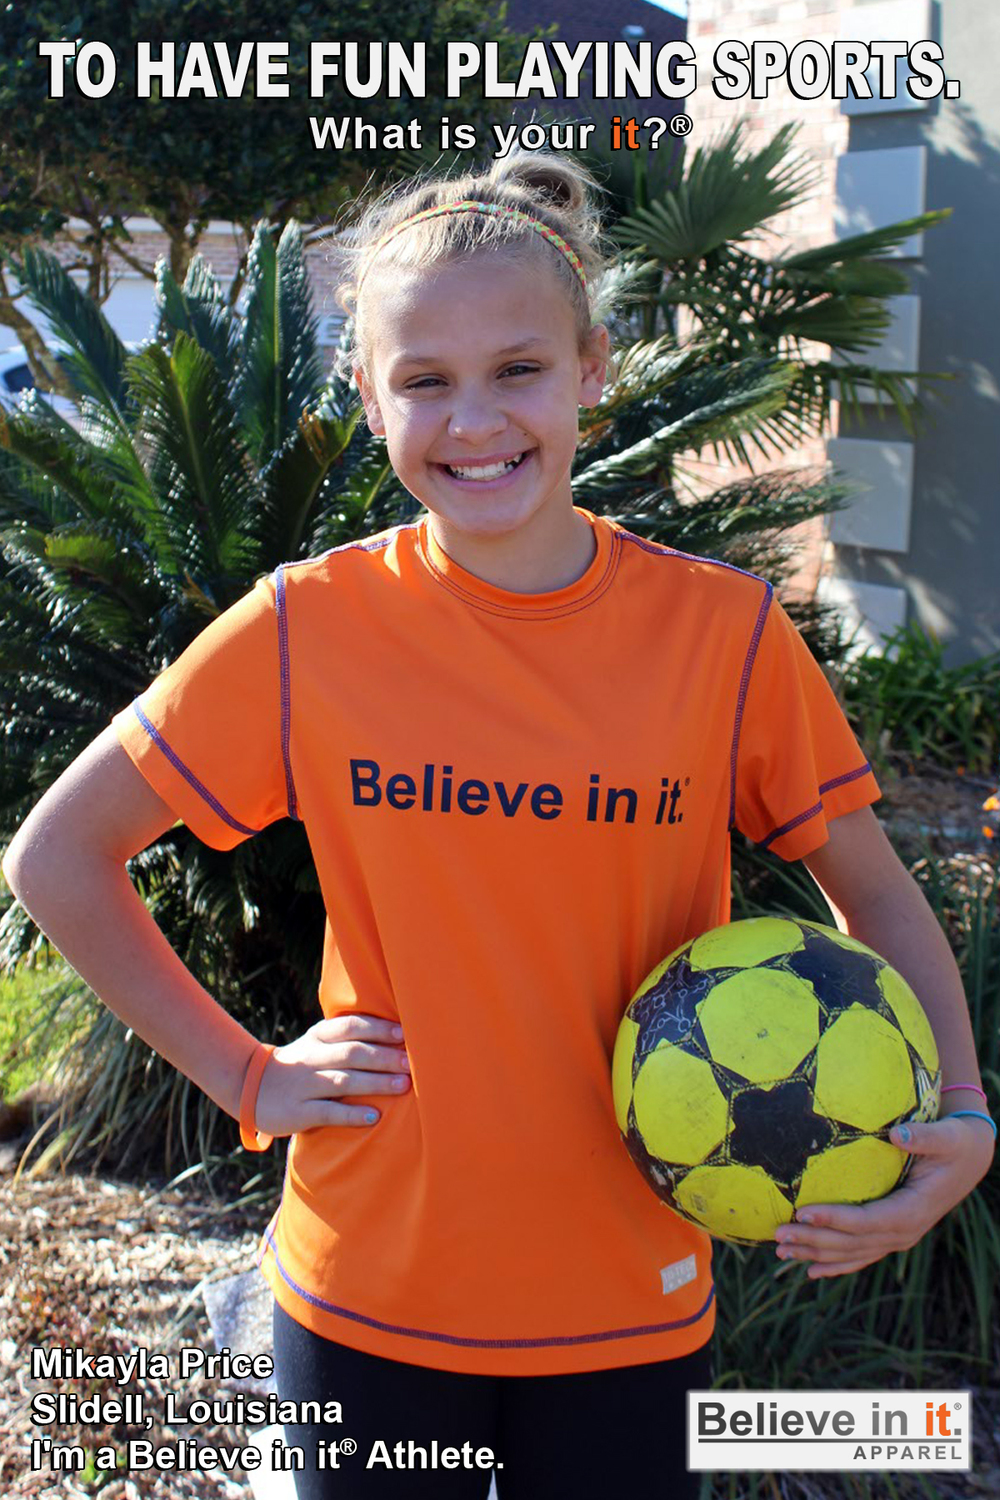 Mikayla Price Believe in it Athlete